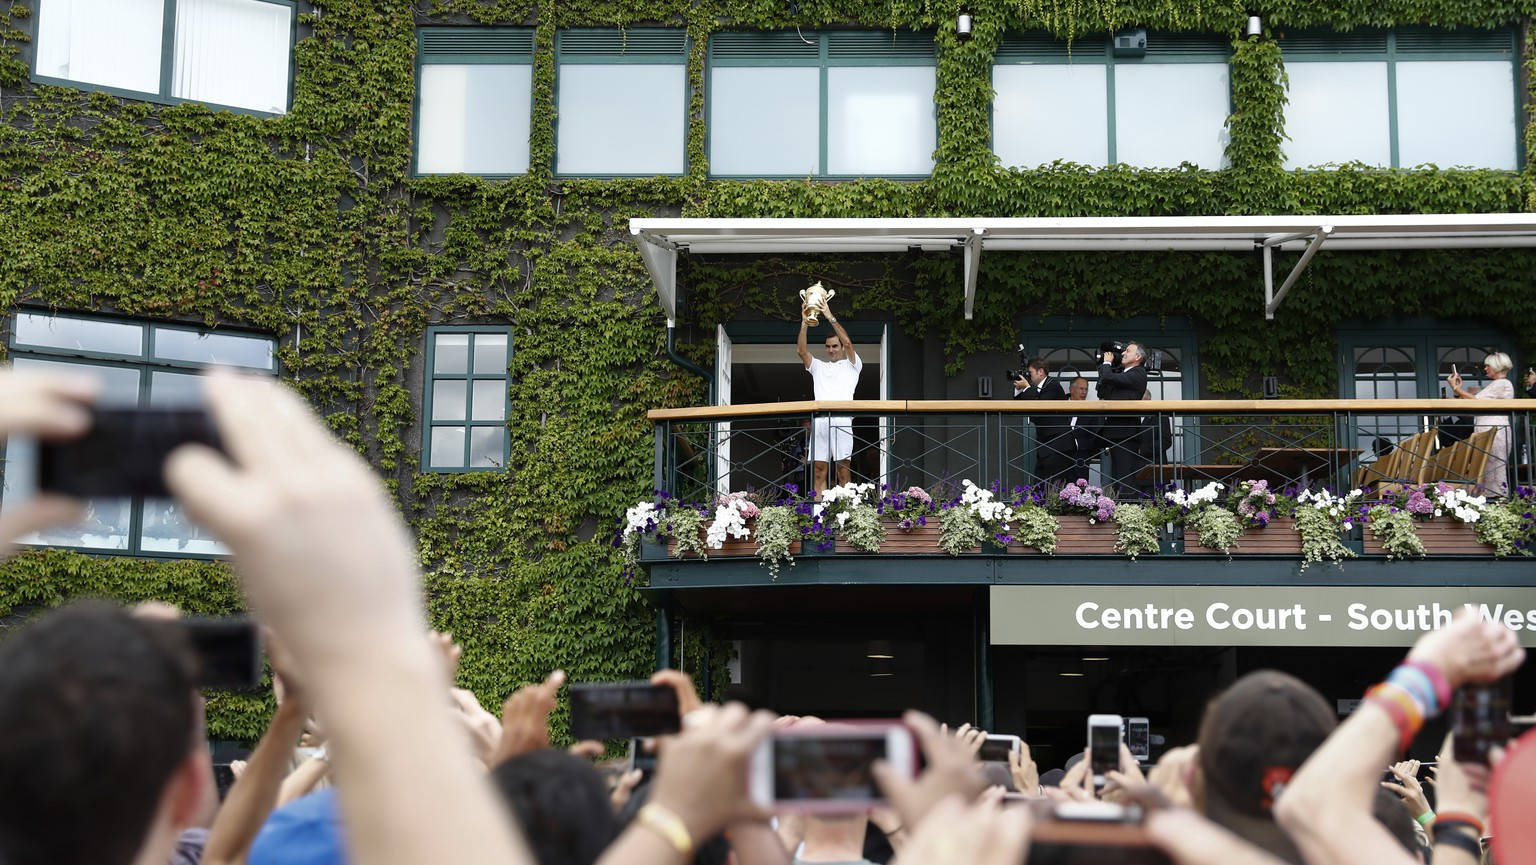 Roger Federer of Switzerland celebrates with the trophy on the balcony of the centre court after winning the men's final match against Marin Cilic of Croatia during the Wimbledon Championships at the All England Lawn Tennis Club, in London, Britain, 16 July 2017. (KEYSTONE/Peter Klaunzer)